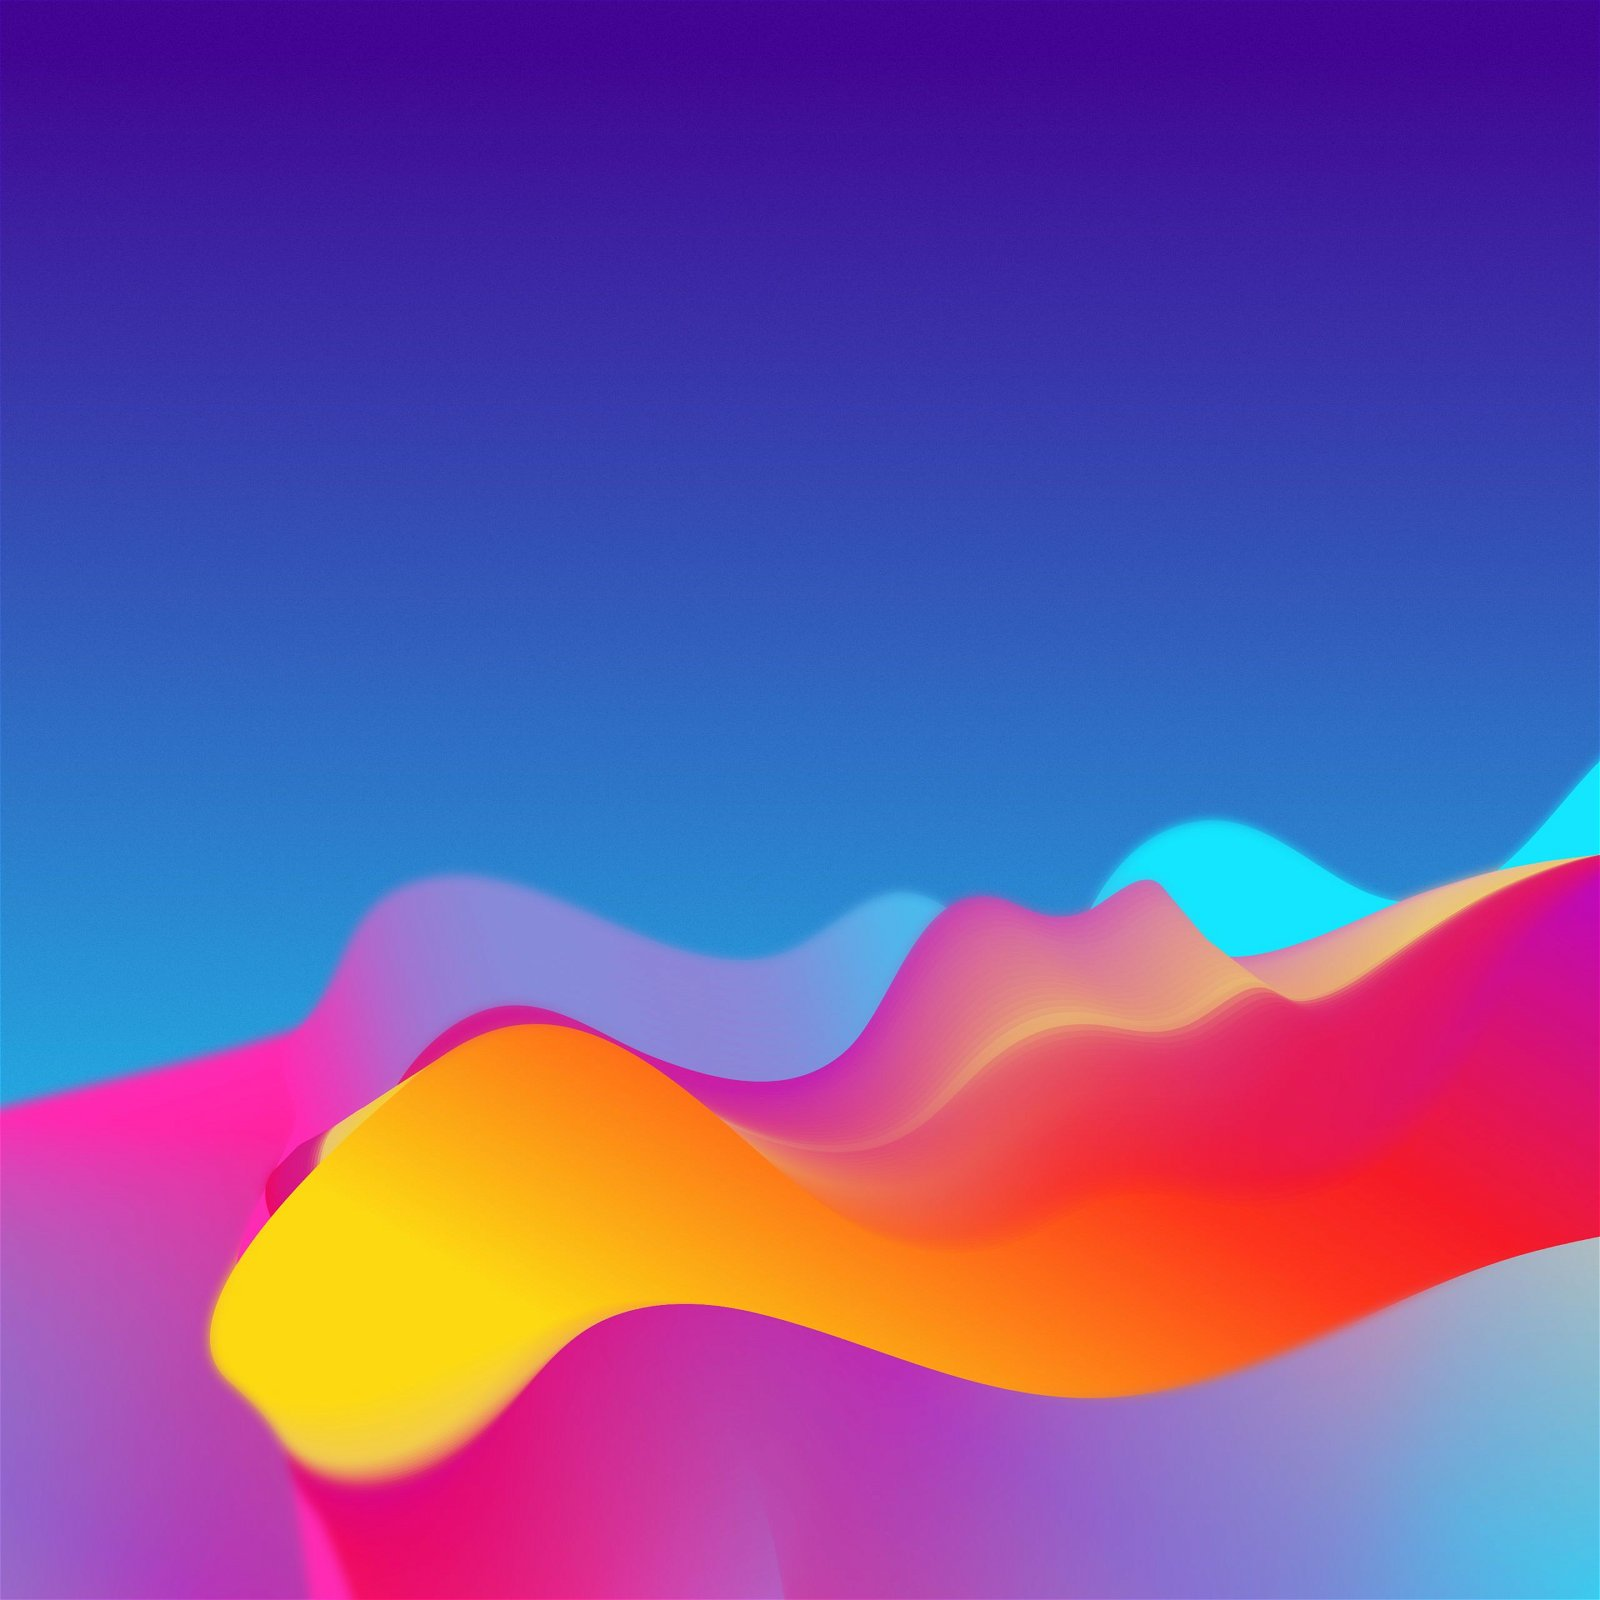 HTC U12 Plus Wallpapers | Download 10 Beautiful Abstract Images 13